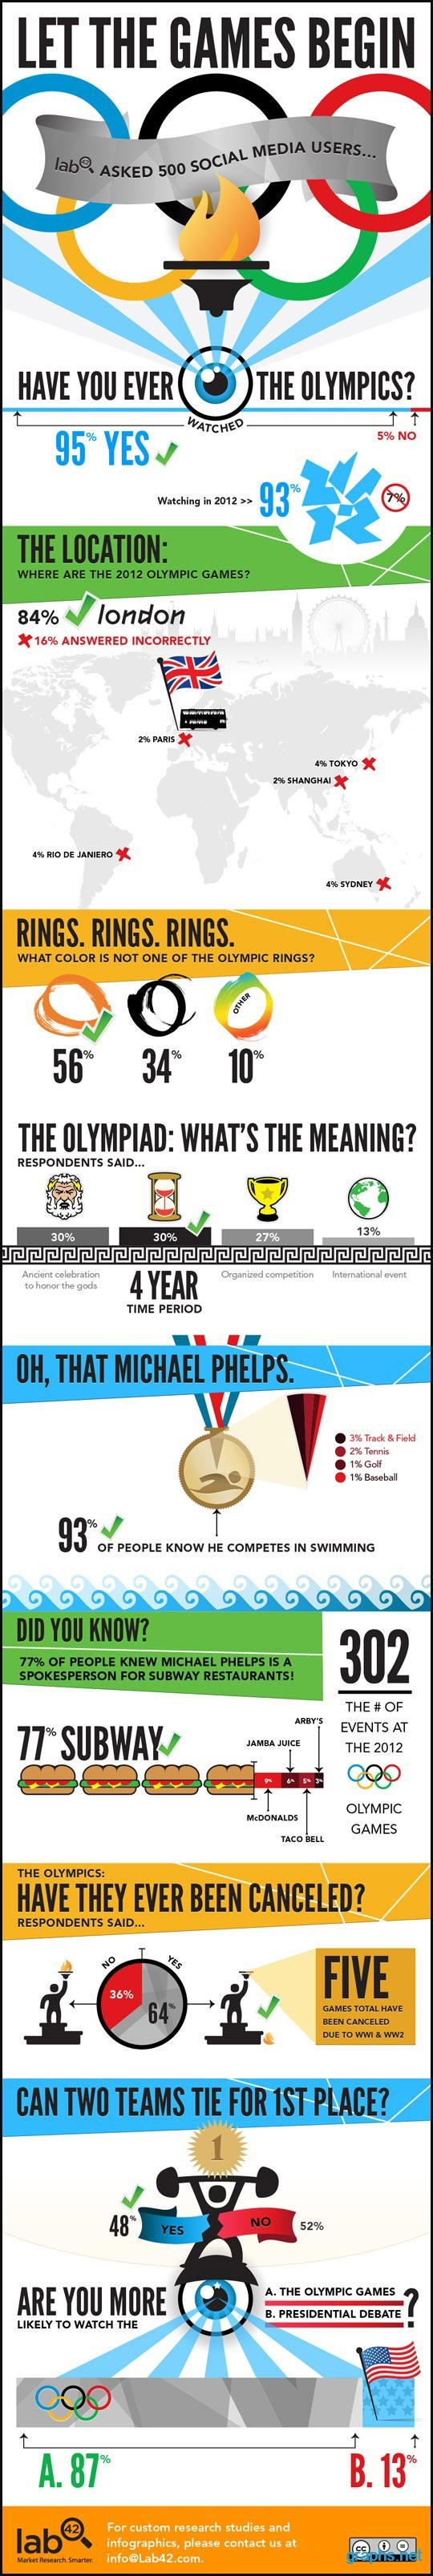 Impact of Olympics on Social Media Users